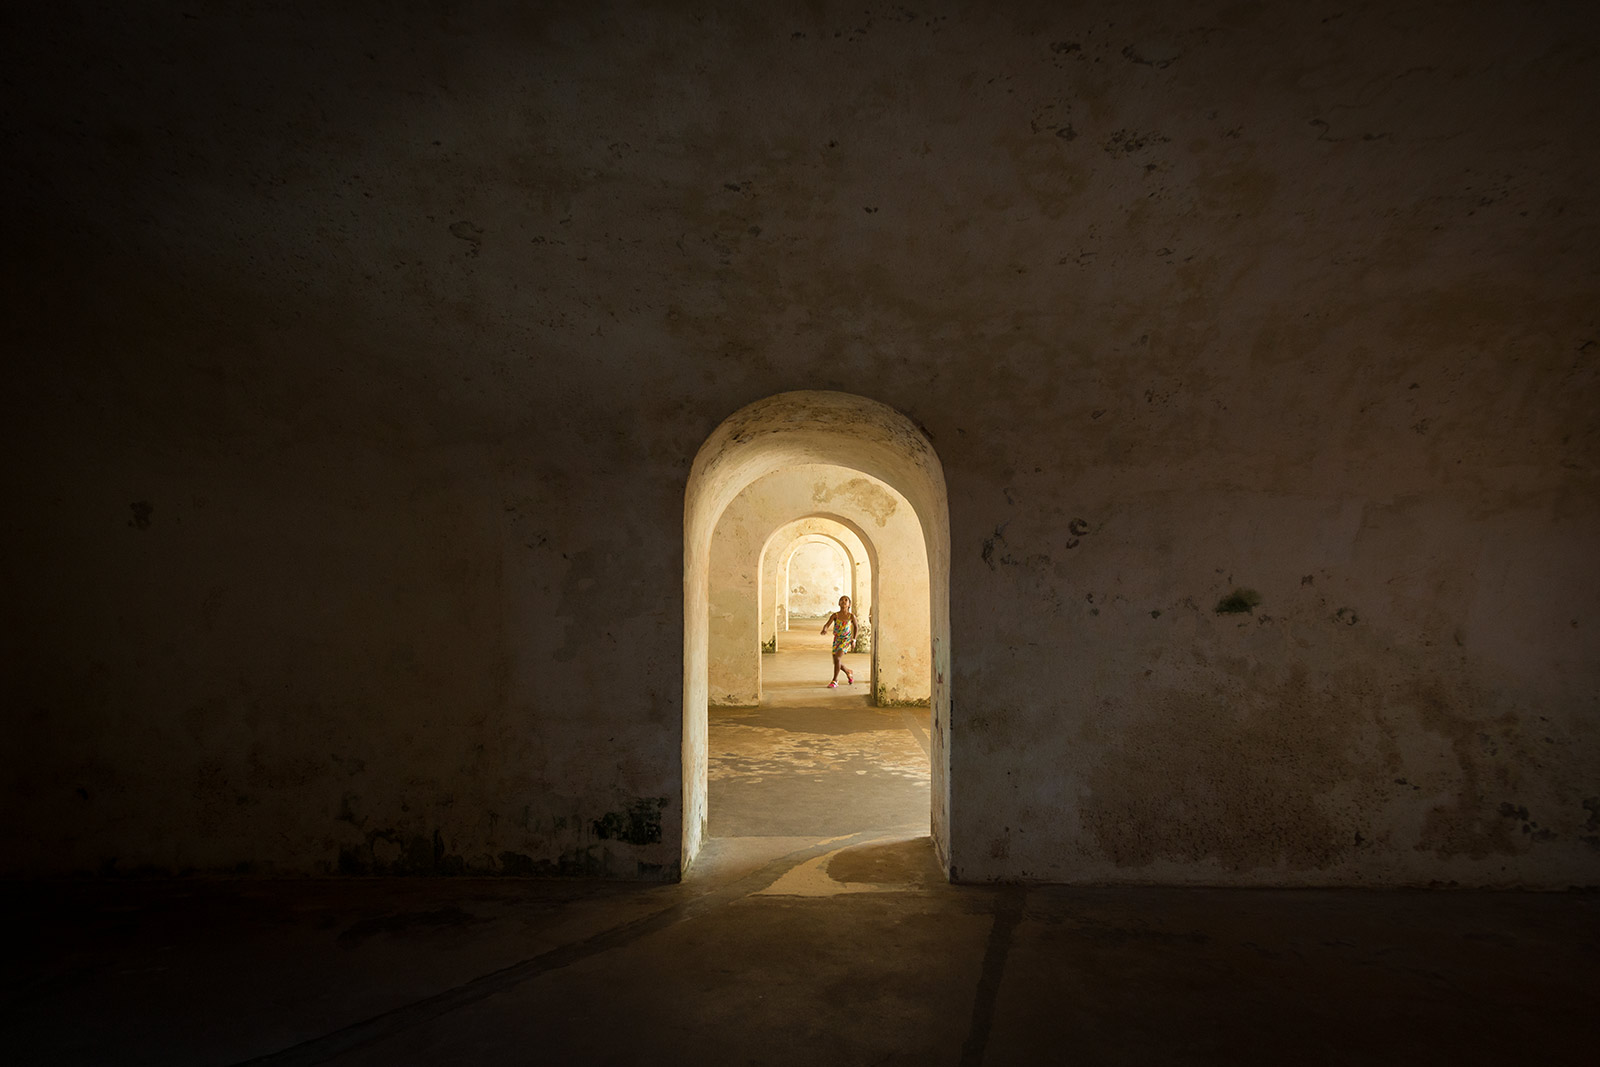 Inside El Morro in San Juan Puerto Rico. A little girl